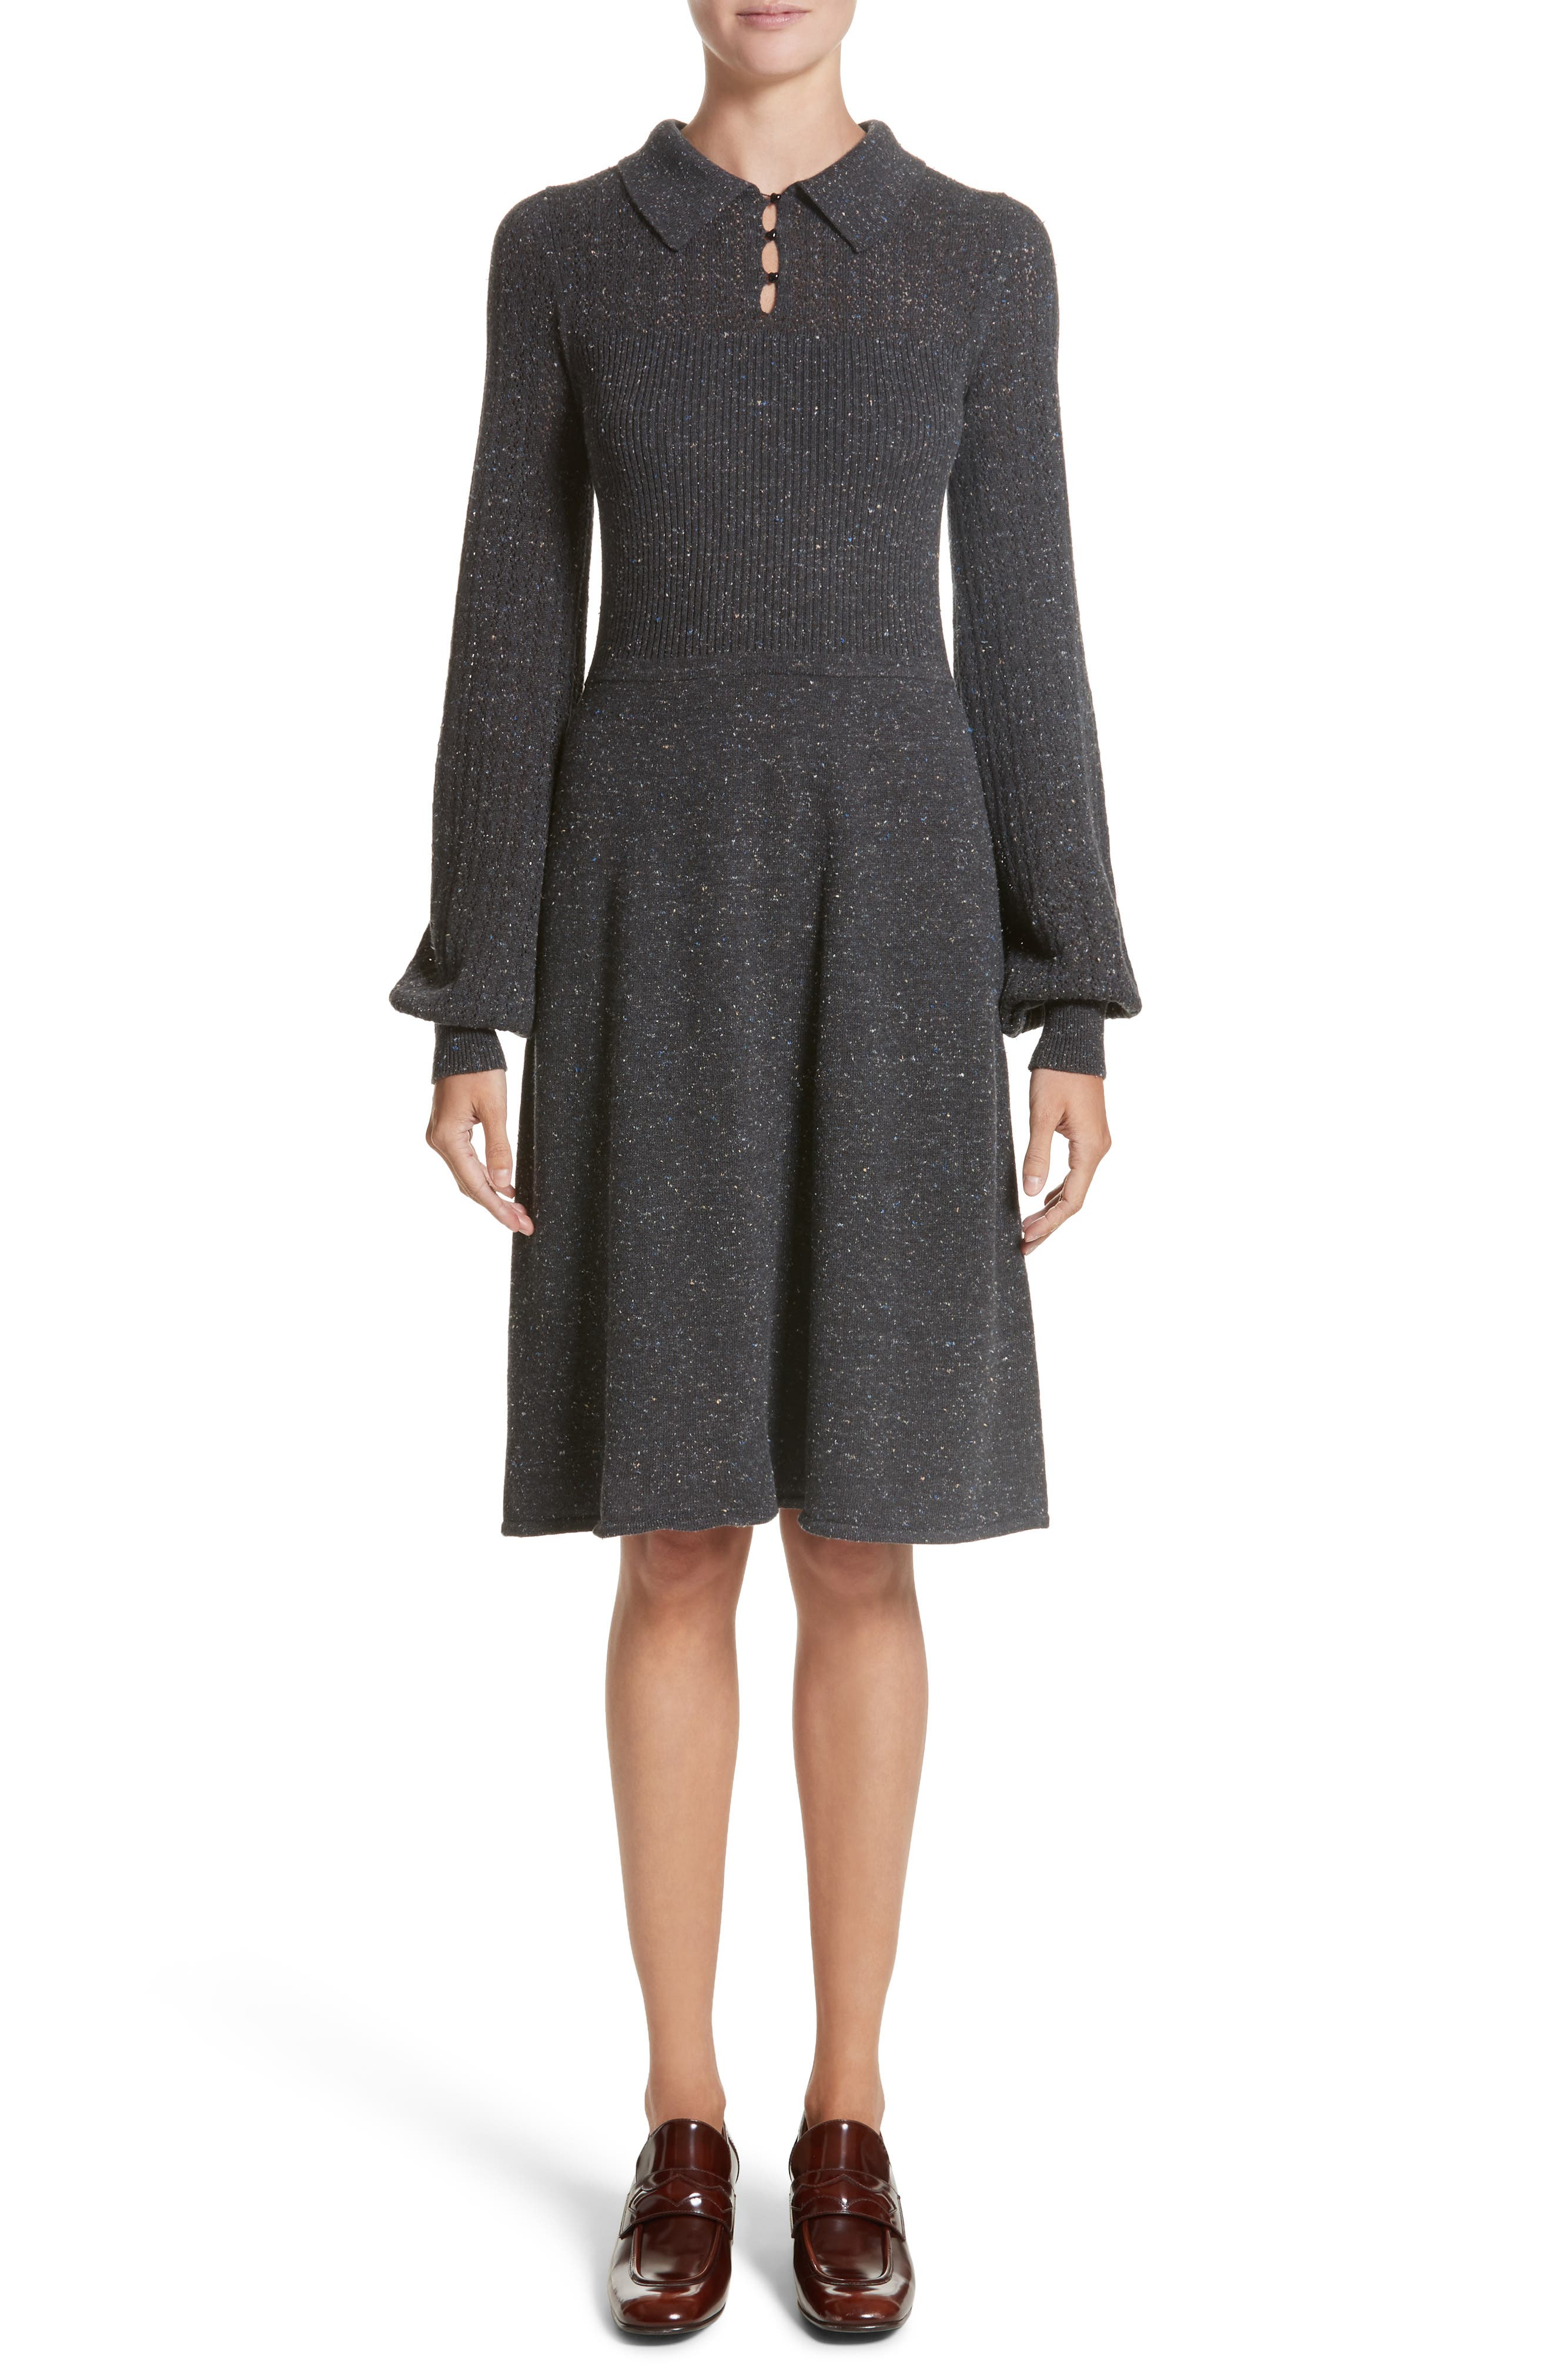 MARC JACOBS Knit Sweater Dress